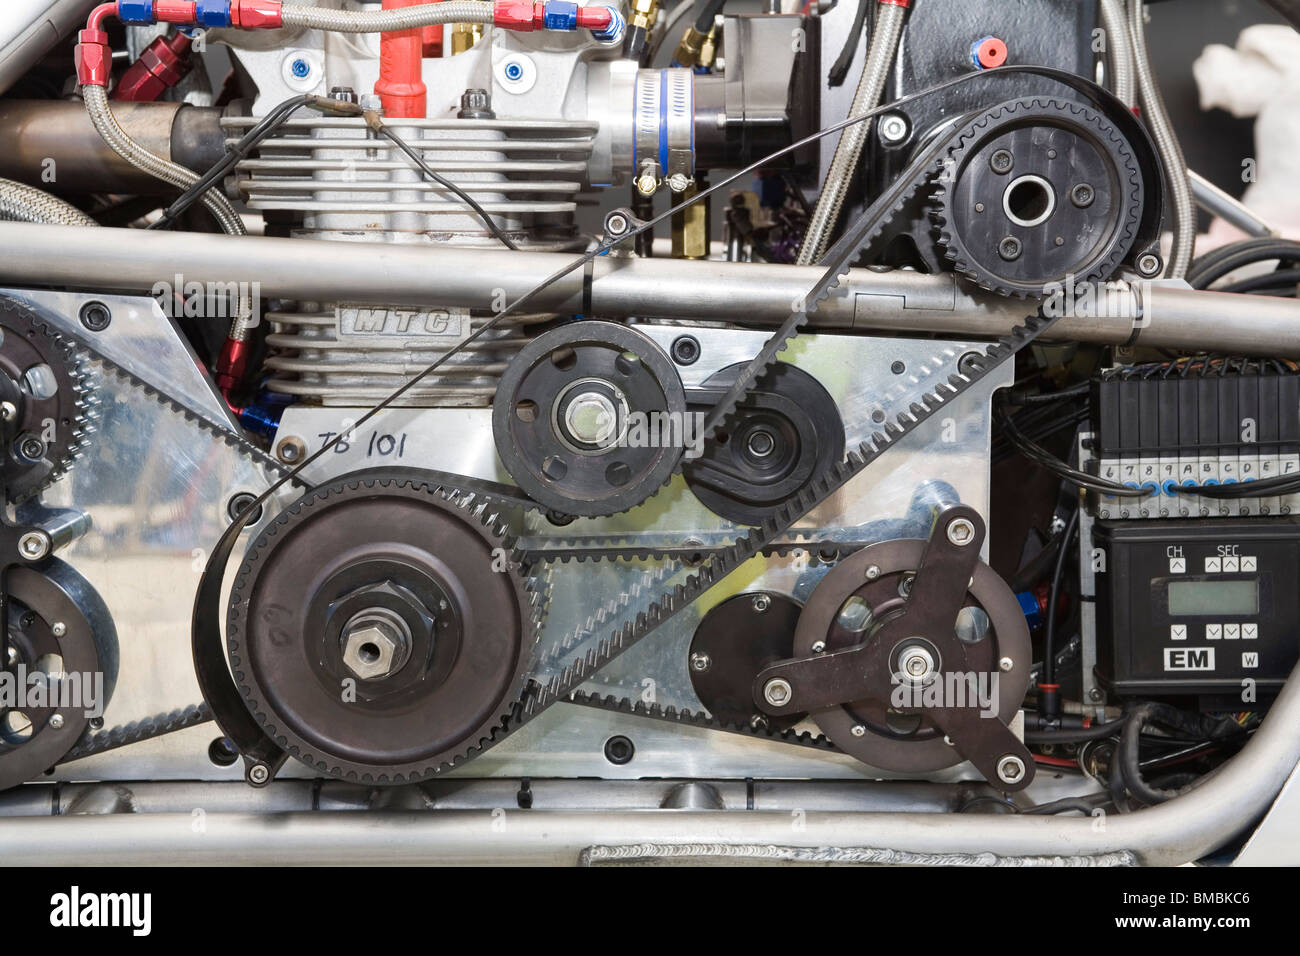 Belts and cog / cogs wheel / wheels on the side of a custom supercharged drag racing motorcycle engine - Stock Image